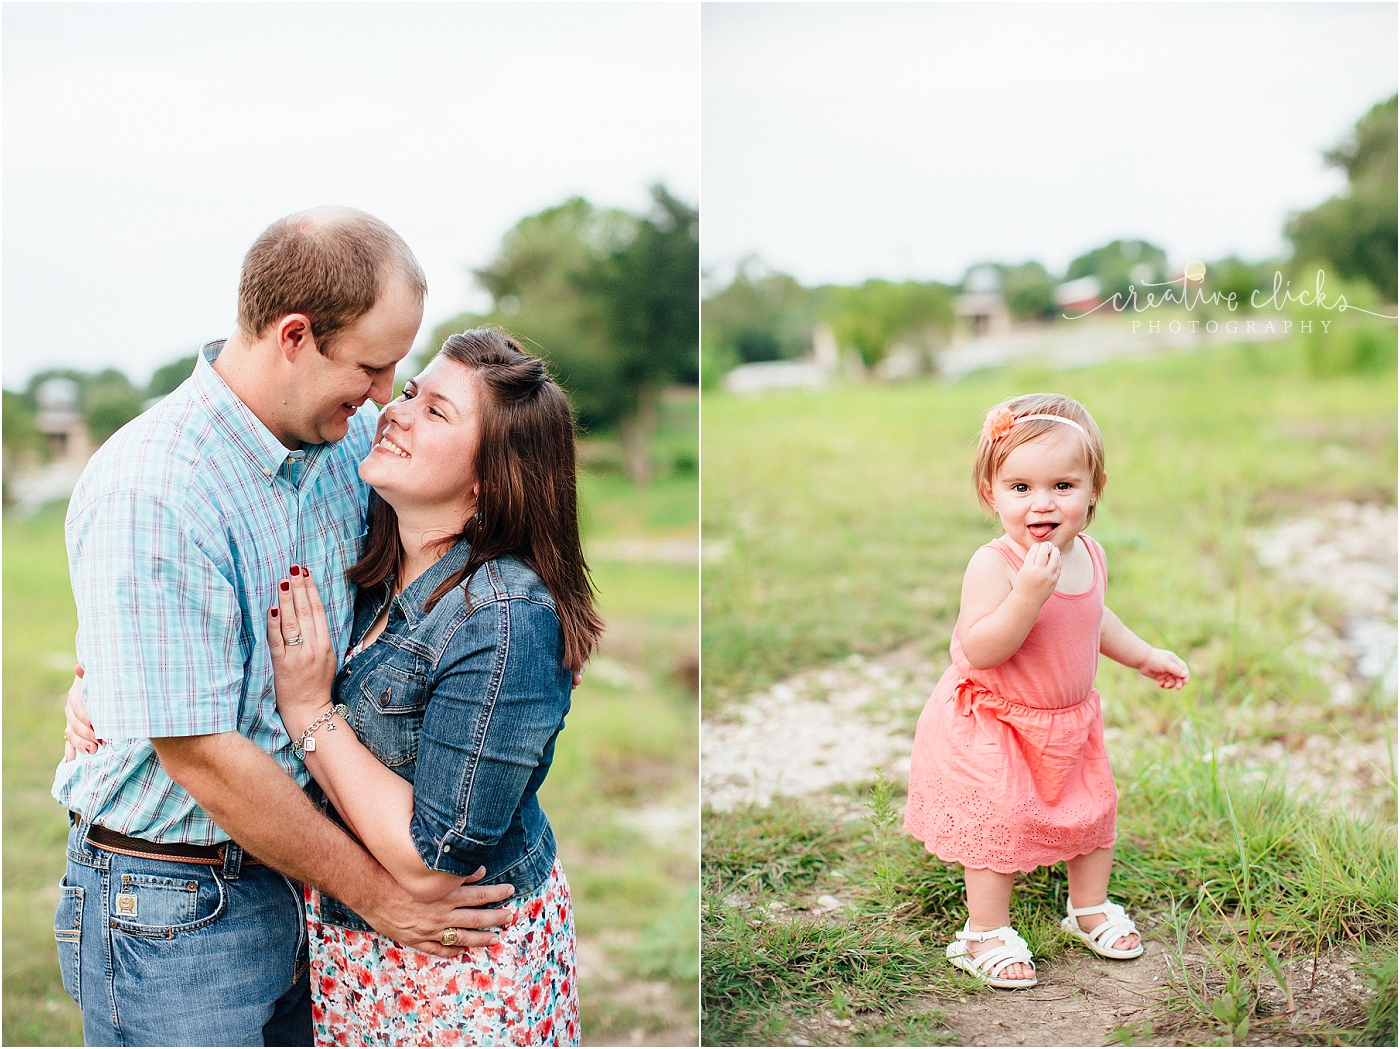 Salado_Creek_Outdoor_Family_Session_14